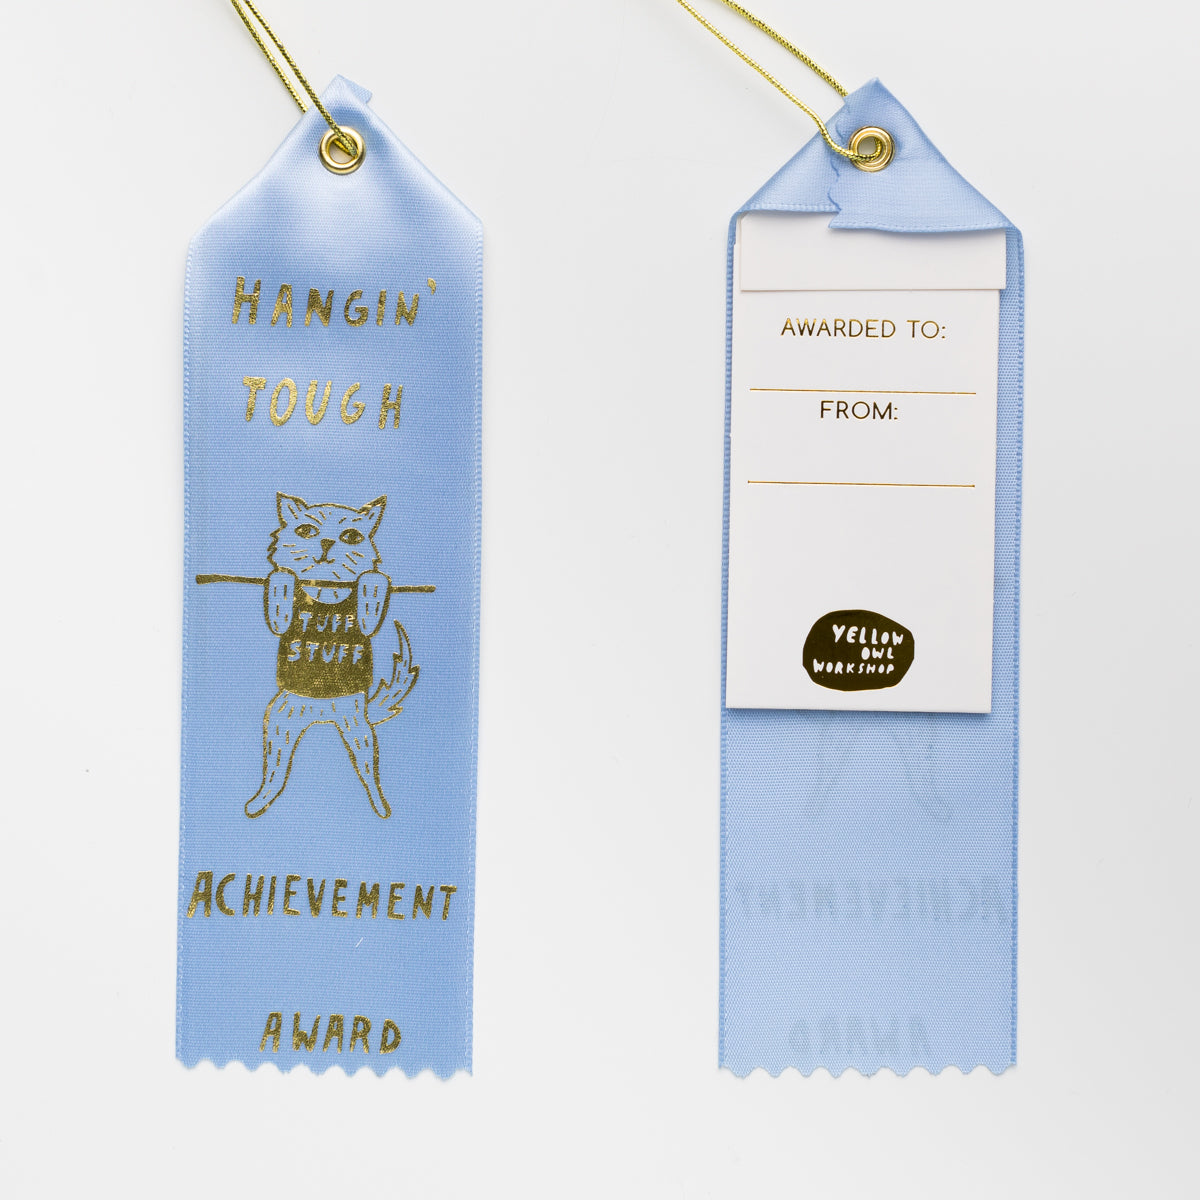 Hangin' Tough - Award Ribbon Card